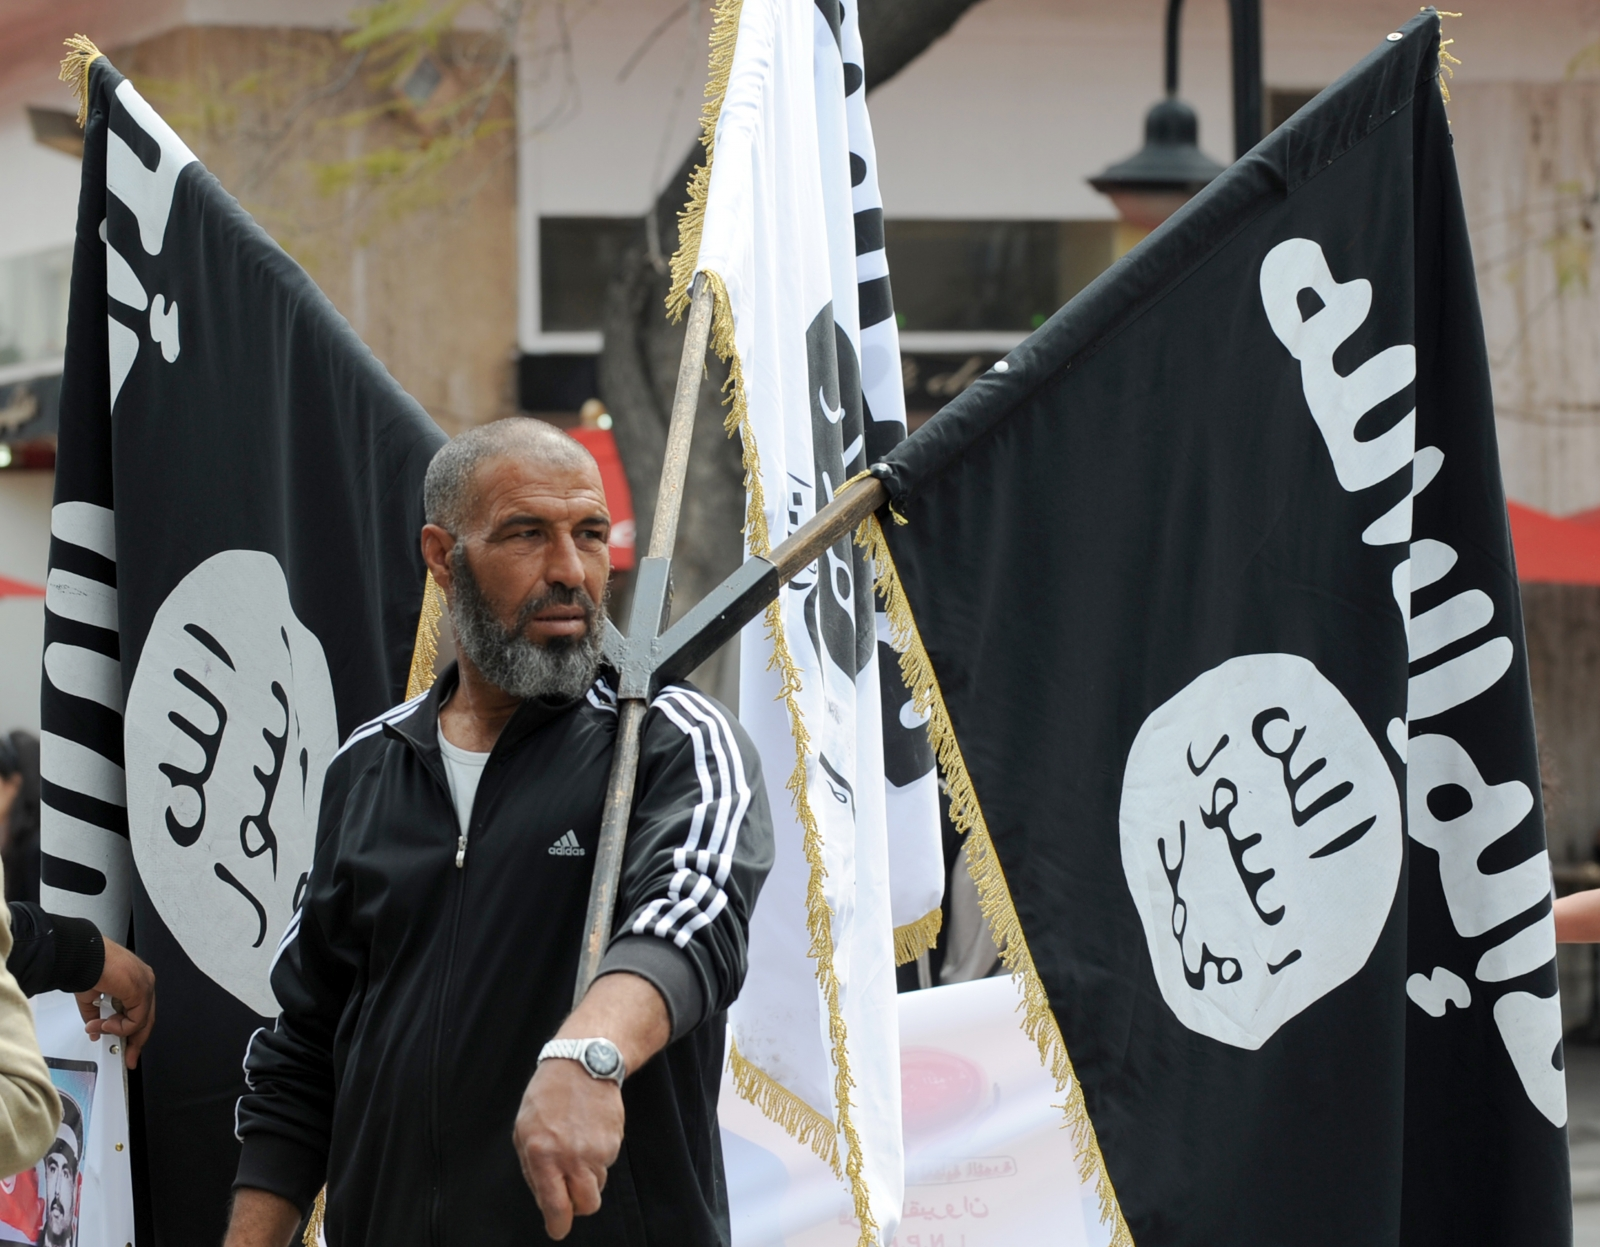 An Islamist holds aloft the Isis flag at a demonstration in Tunis. (Getty)